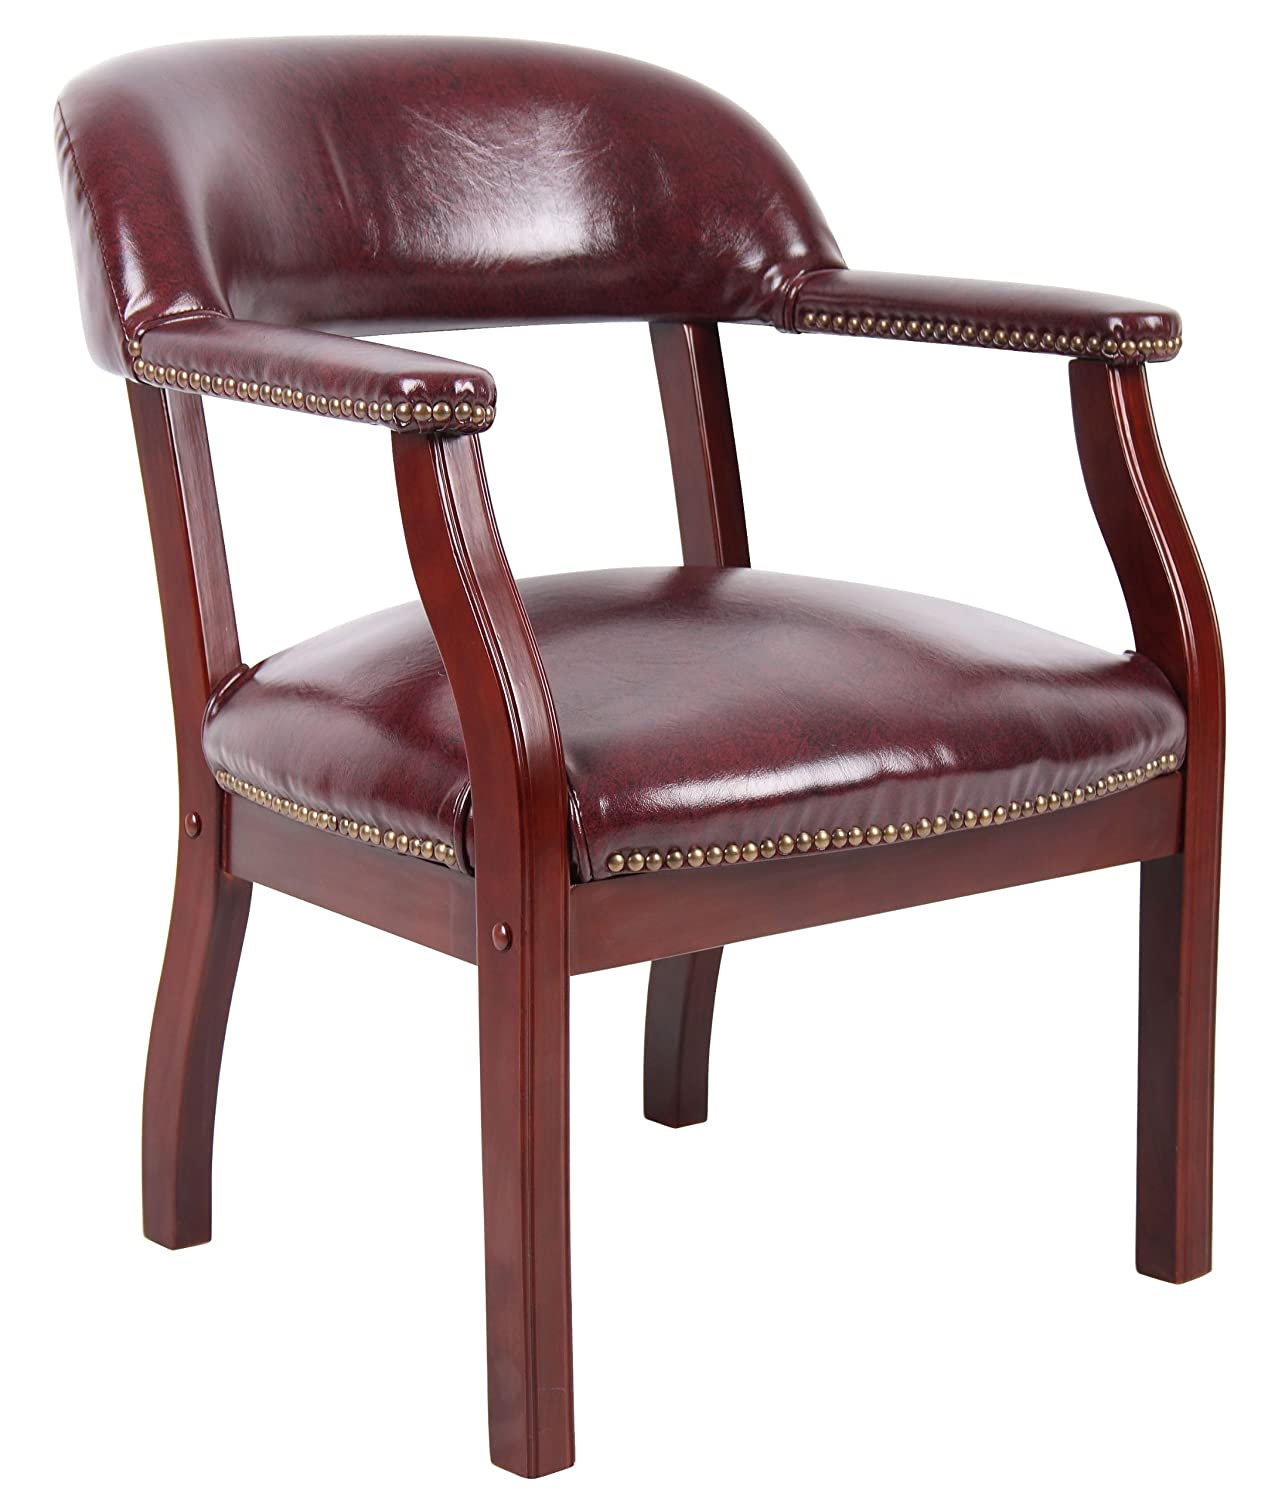 Armchairs For Heavy People – Big Men Rated | For Big ...